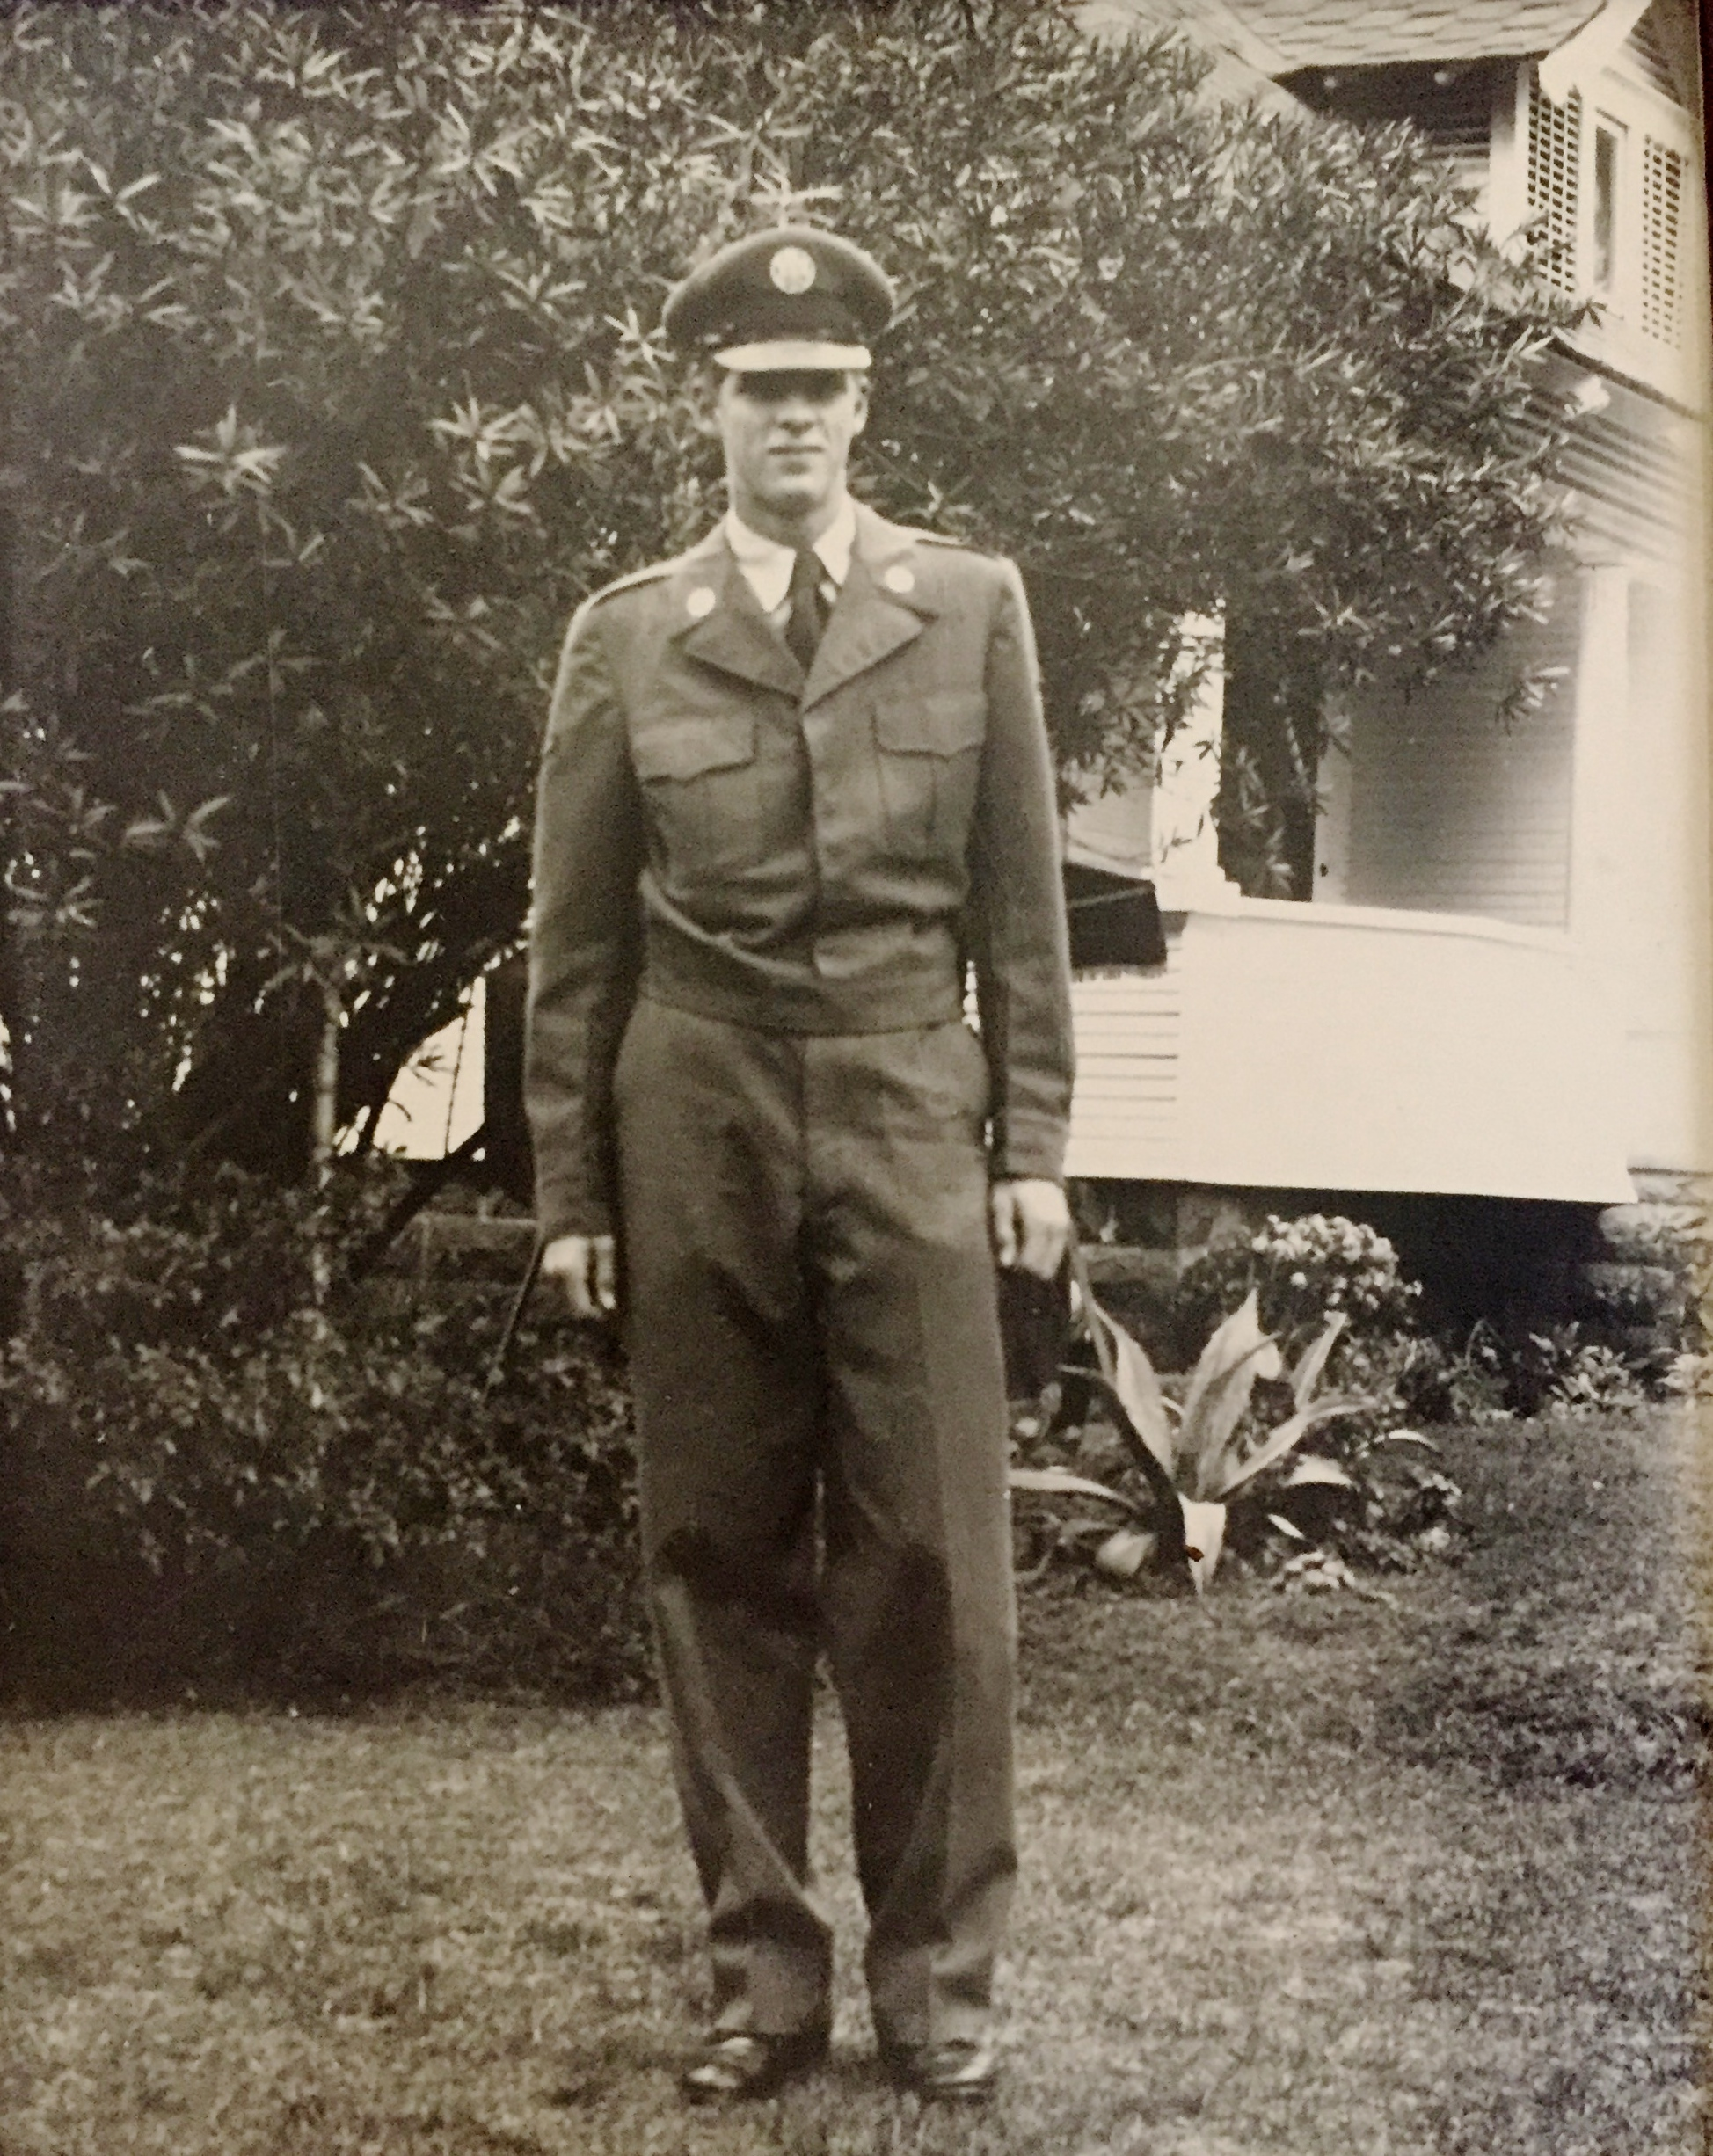 Portrait of the blogger as a young Airman, 1952.